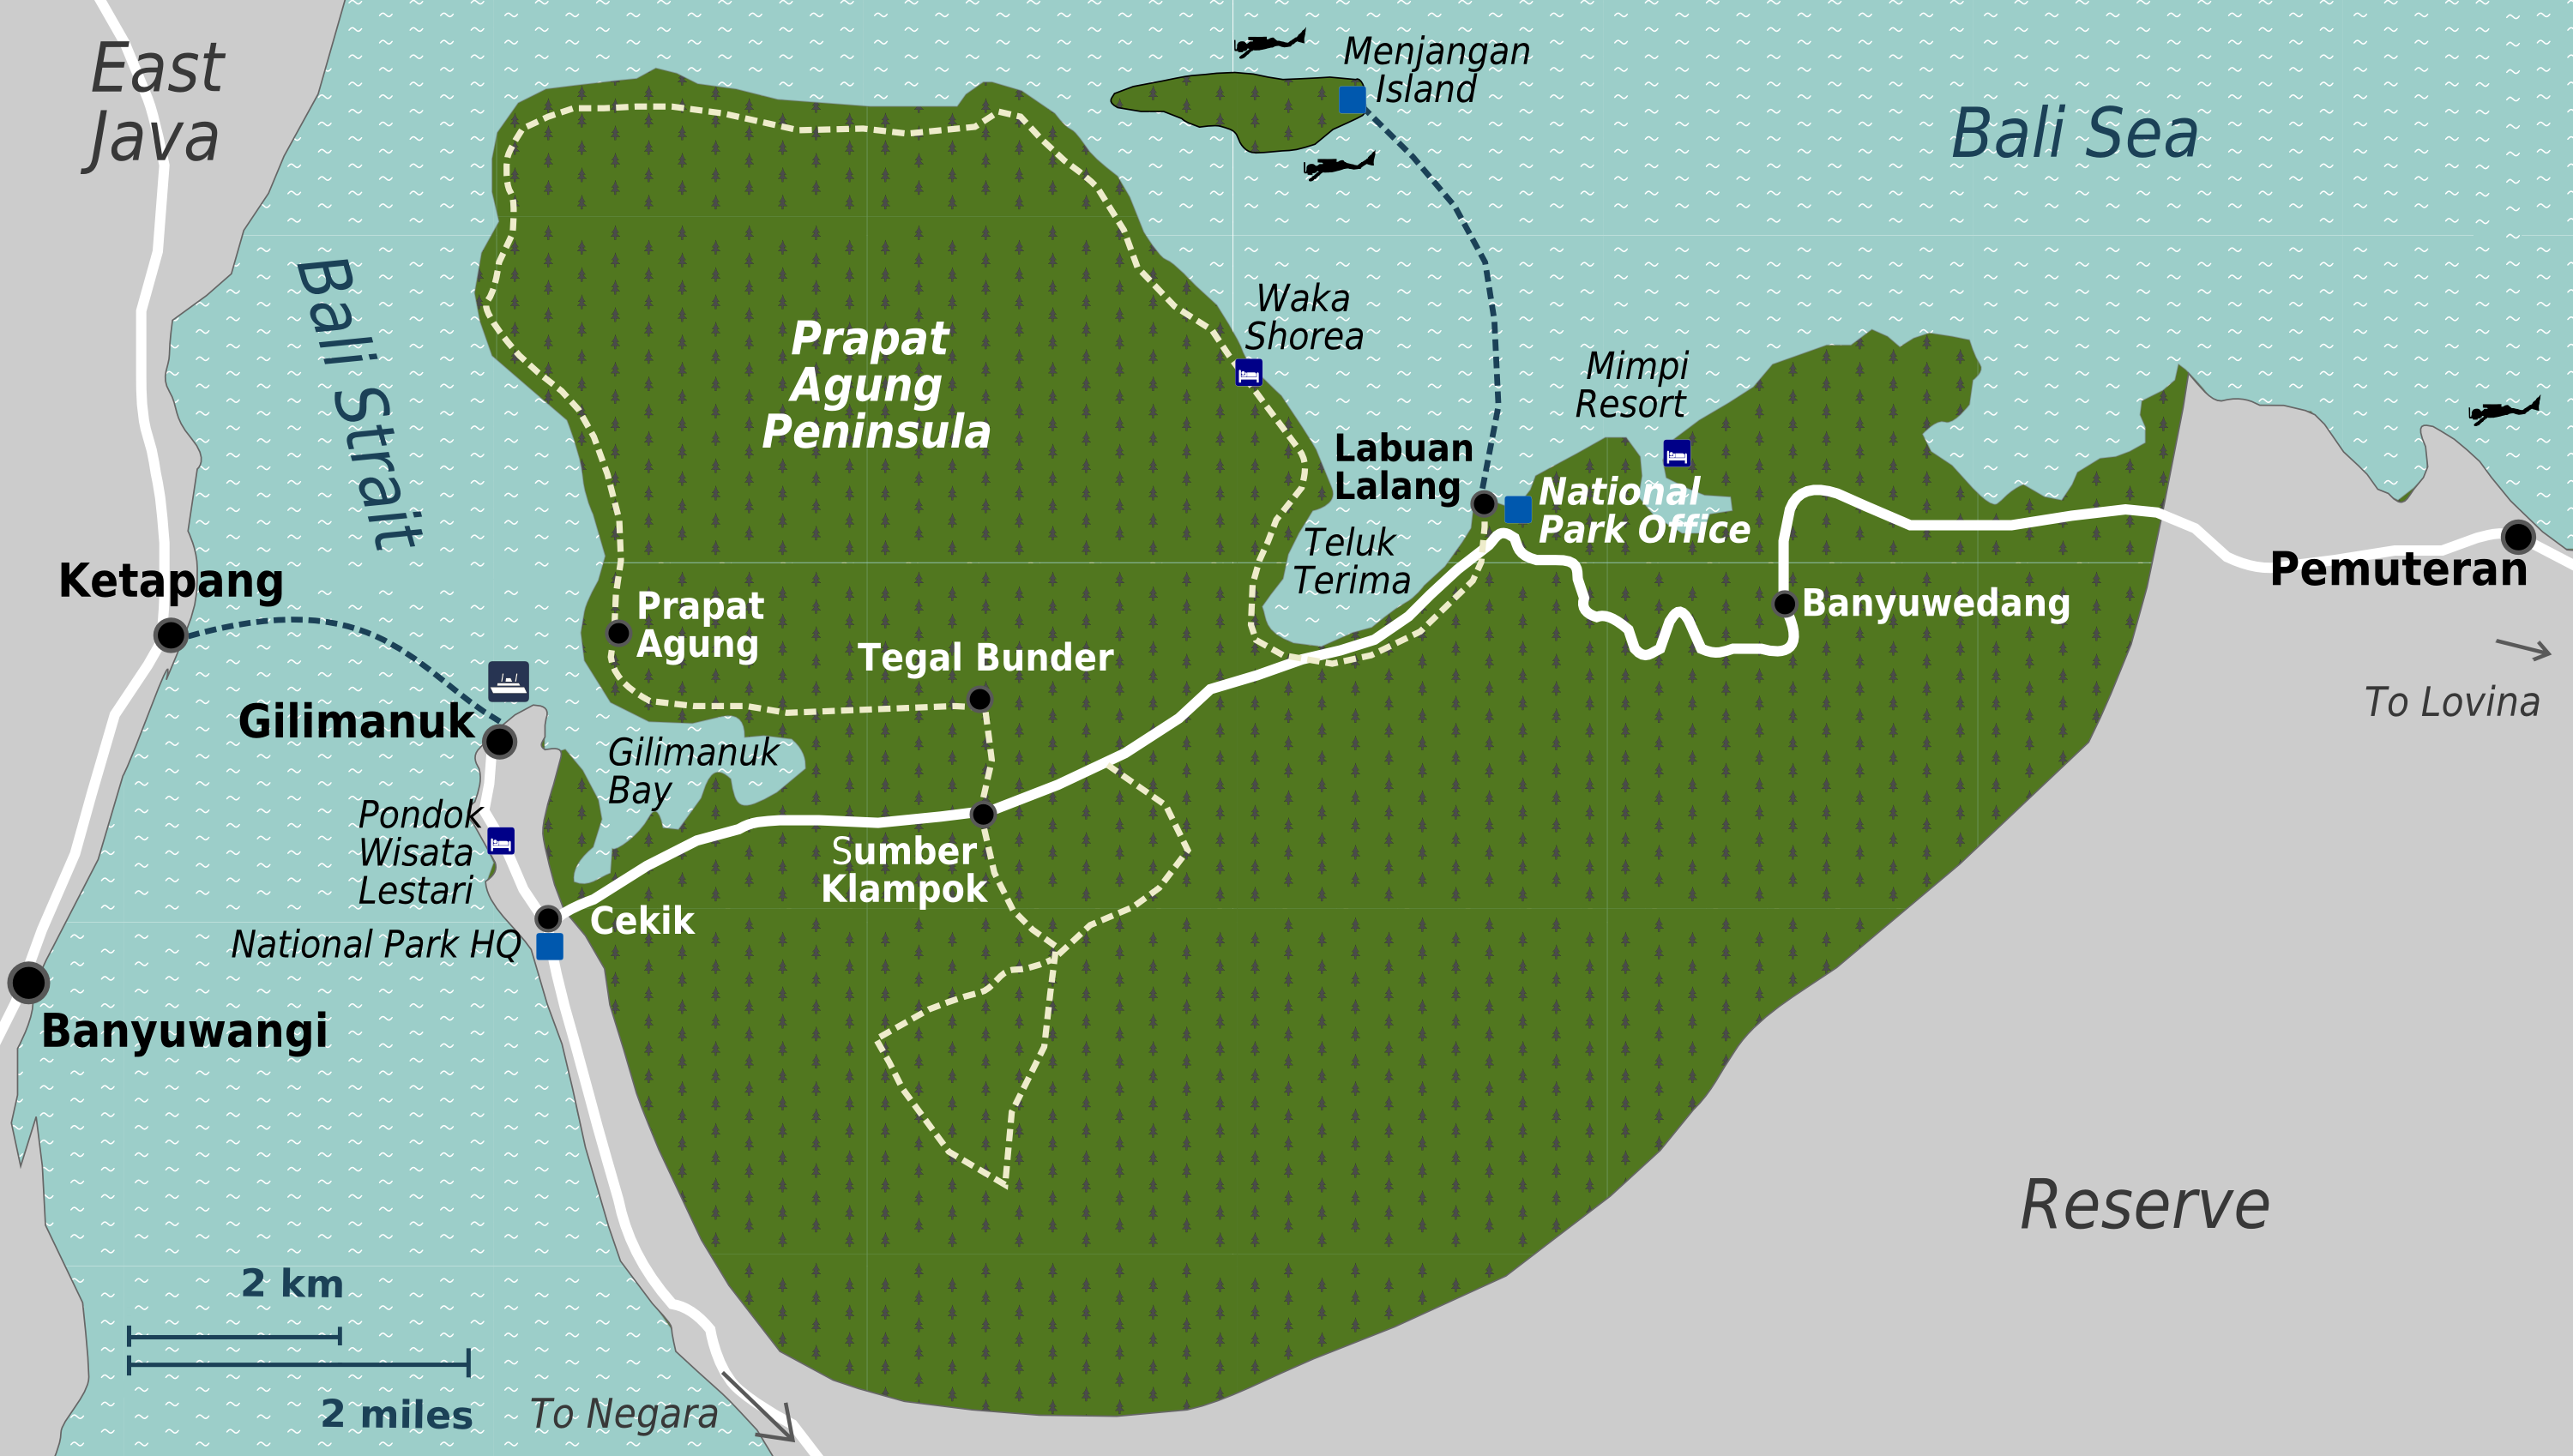 Carte Bali Pemuteran.File West Bali National Park Map Png Wikimedia Commons